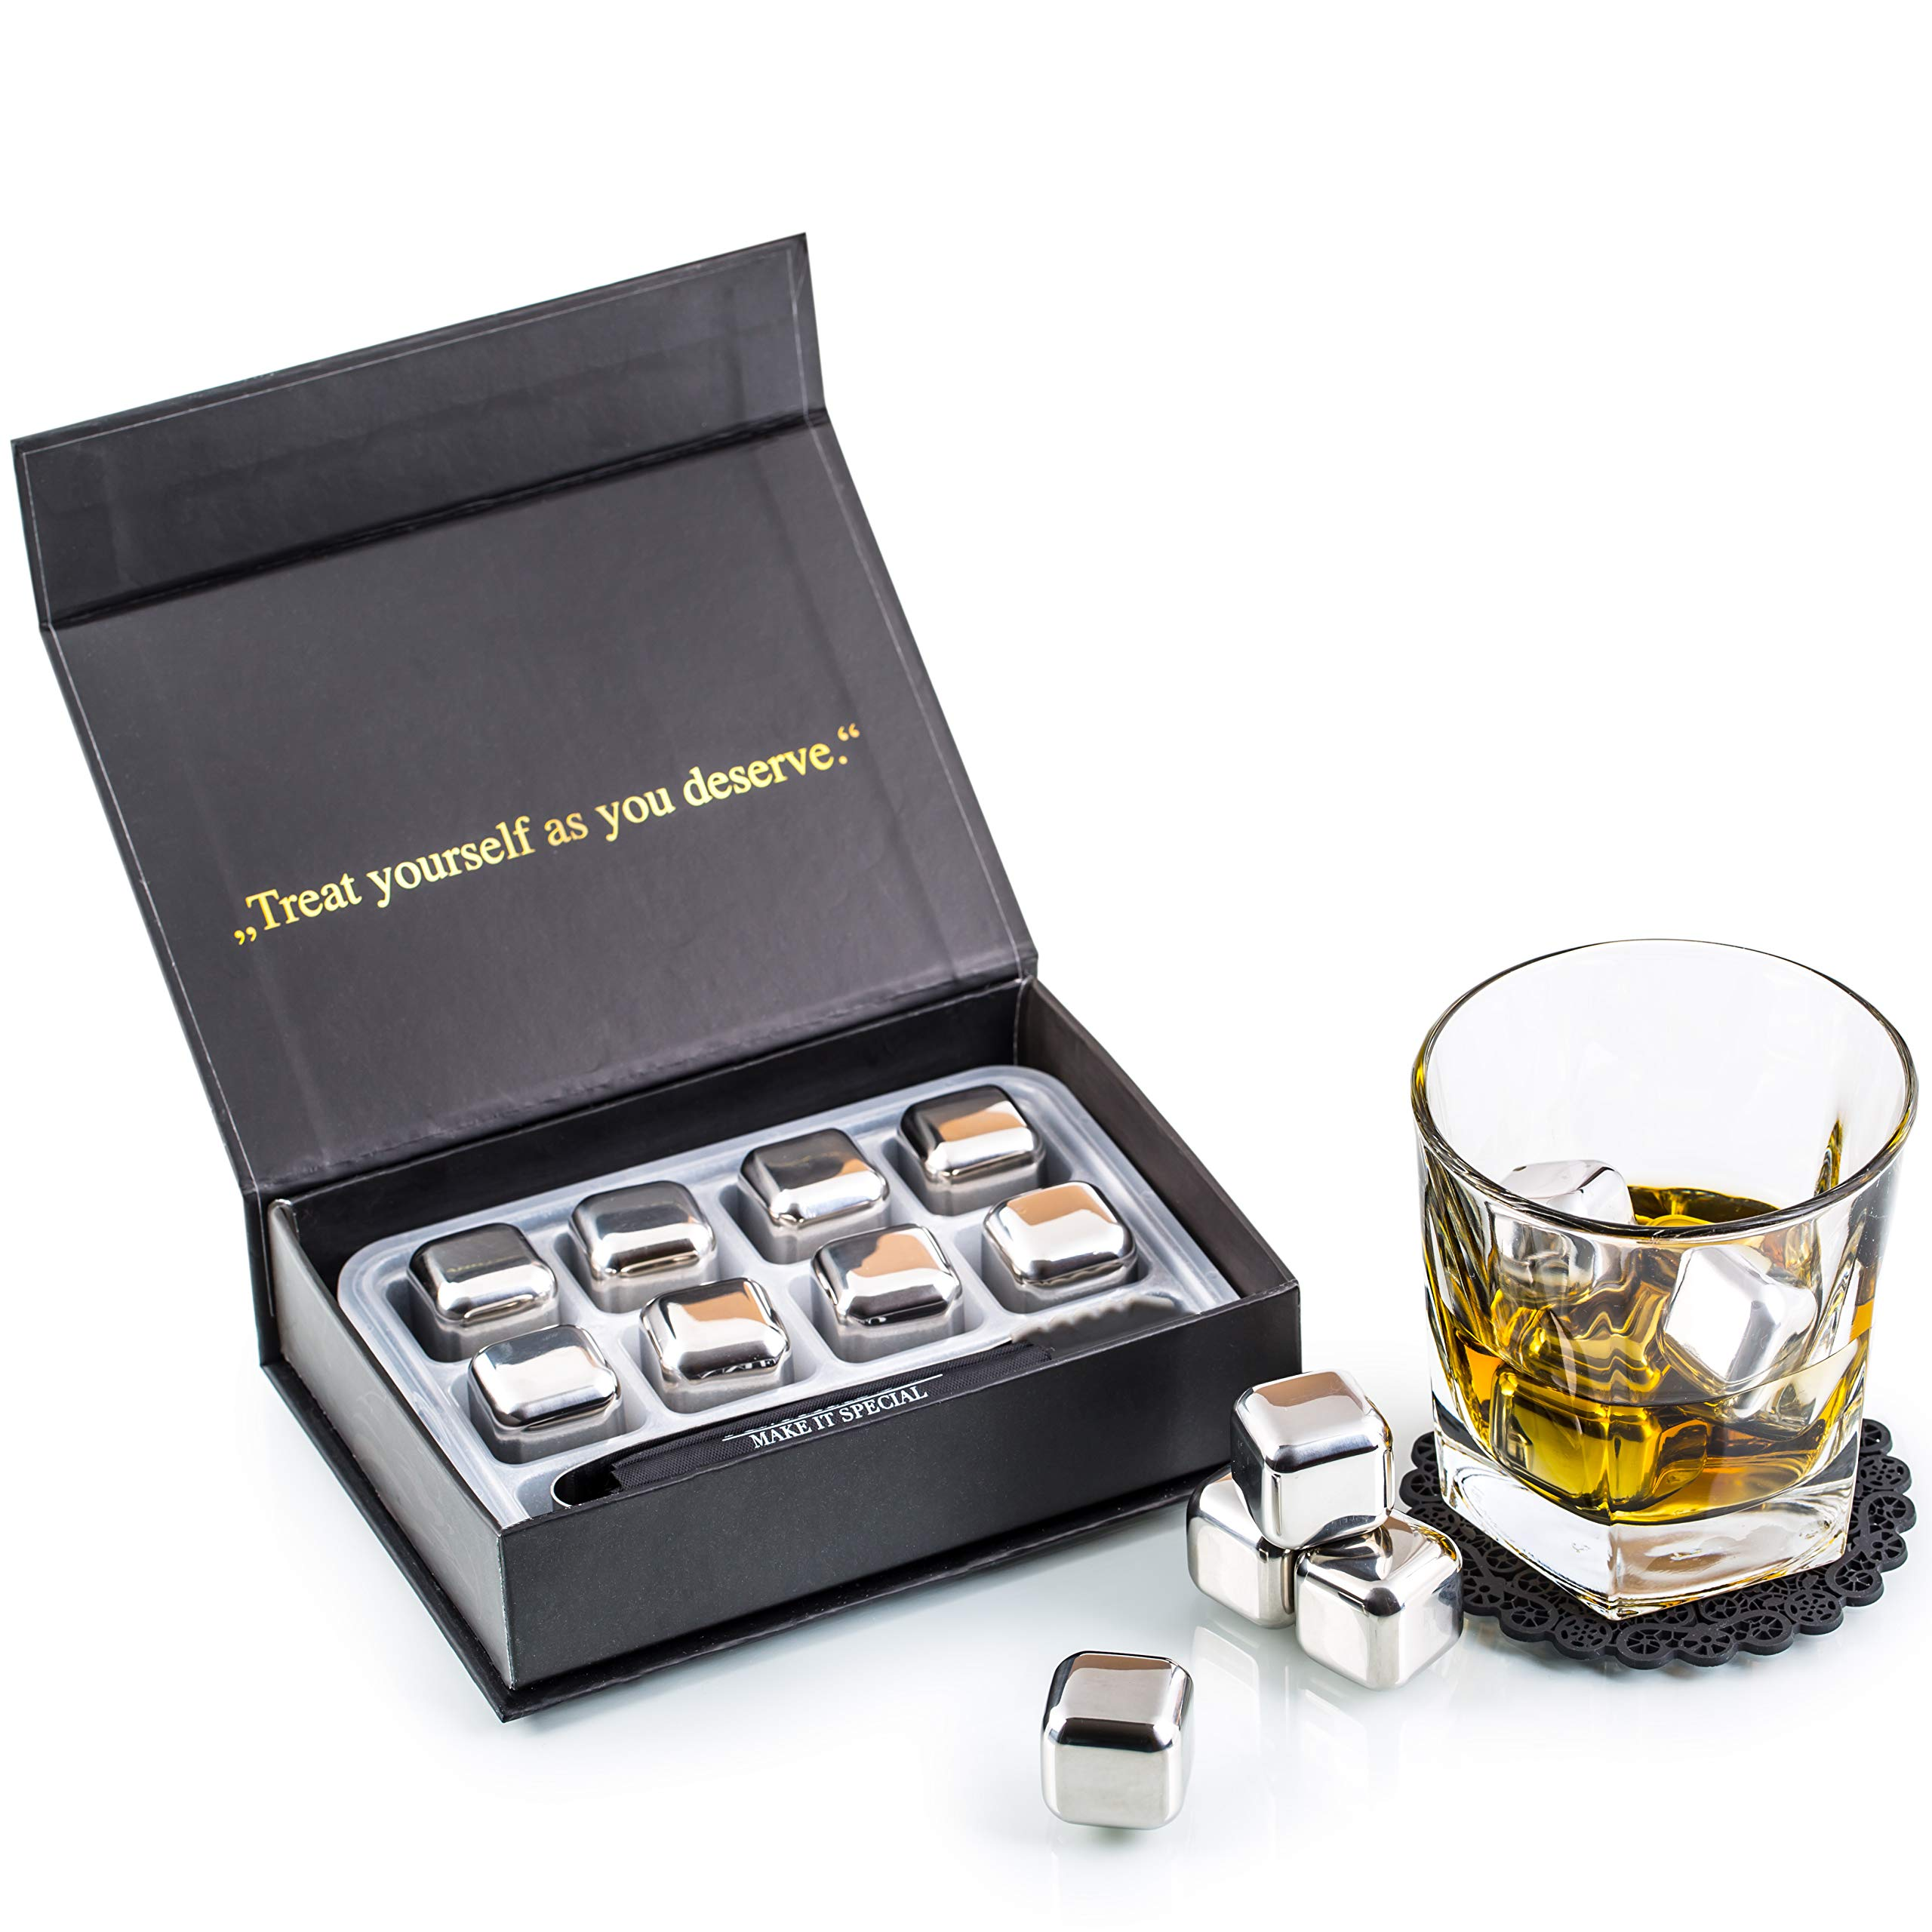 Exclusive Whiskey Stones Gift Set - High Cooling Technology - Reusable Ice Cubes - Stainless Steel Whiskey Ice Cubes - Whiskey Rocks - Whiskey Gifts for Men - Best Man Gift with Coasters + Ice Tongs by Amerigo